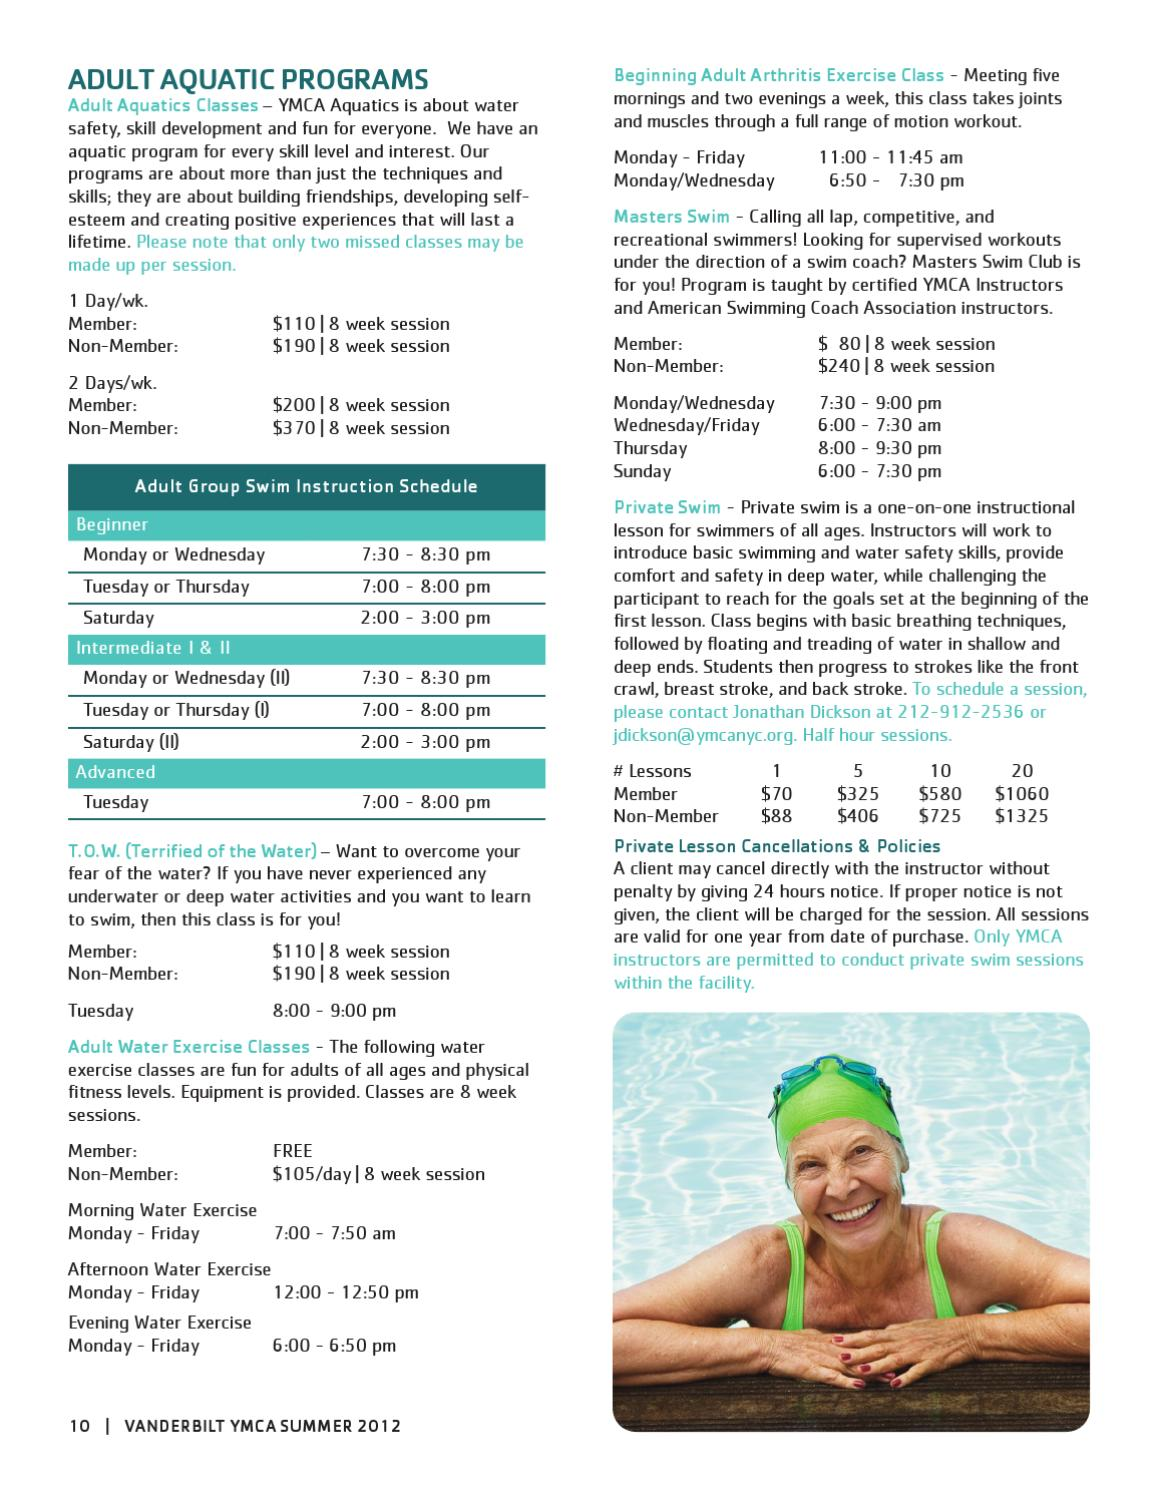 vanderbilt y summer 2012 program guide by new york city's ymca - issuu